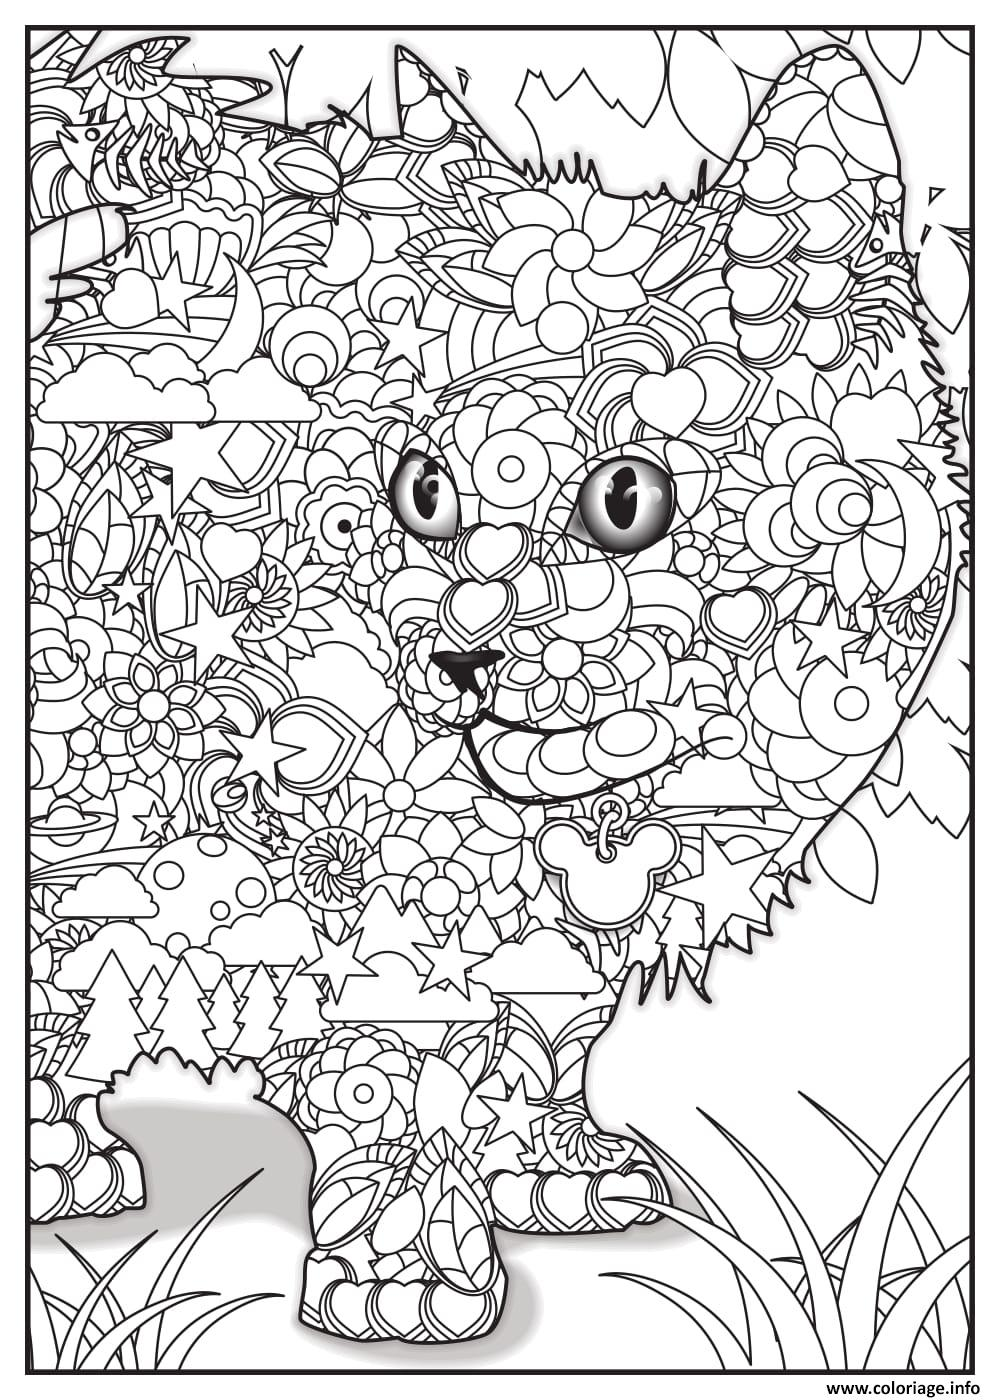 Coloriage chat adulte animaux dessin - Jeux de coloriage de chat ...